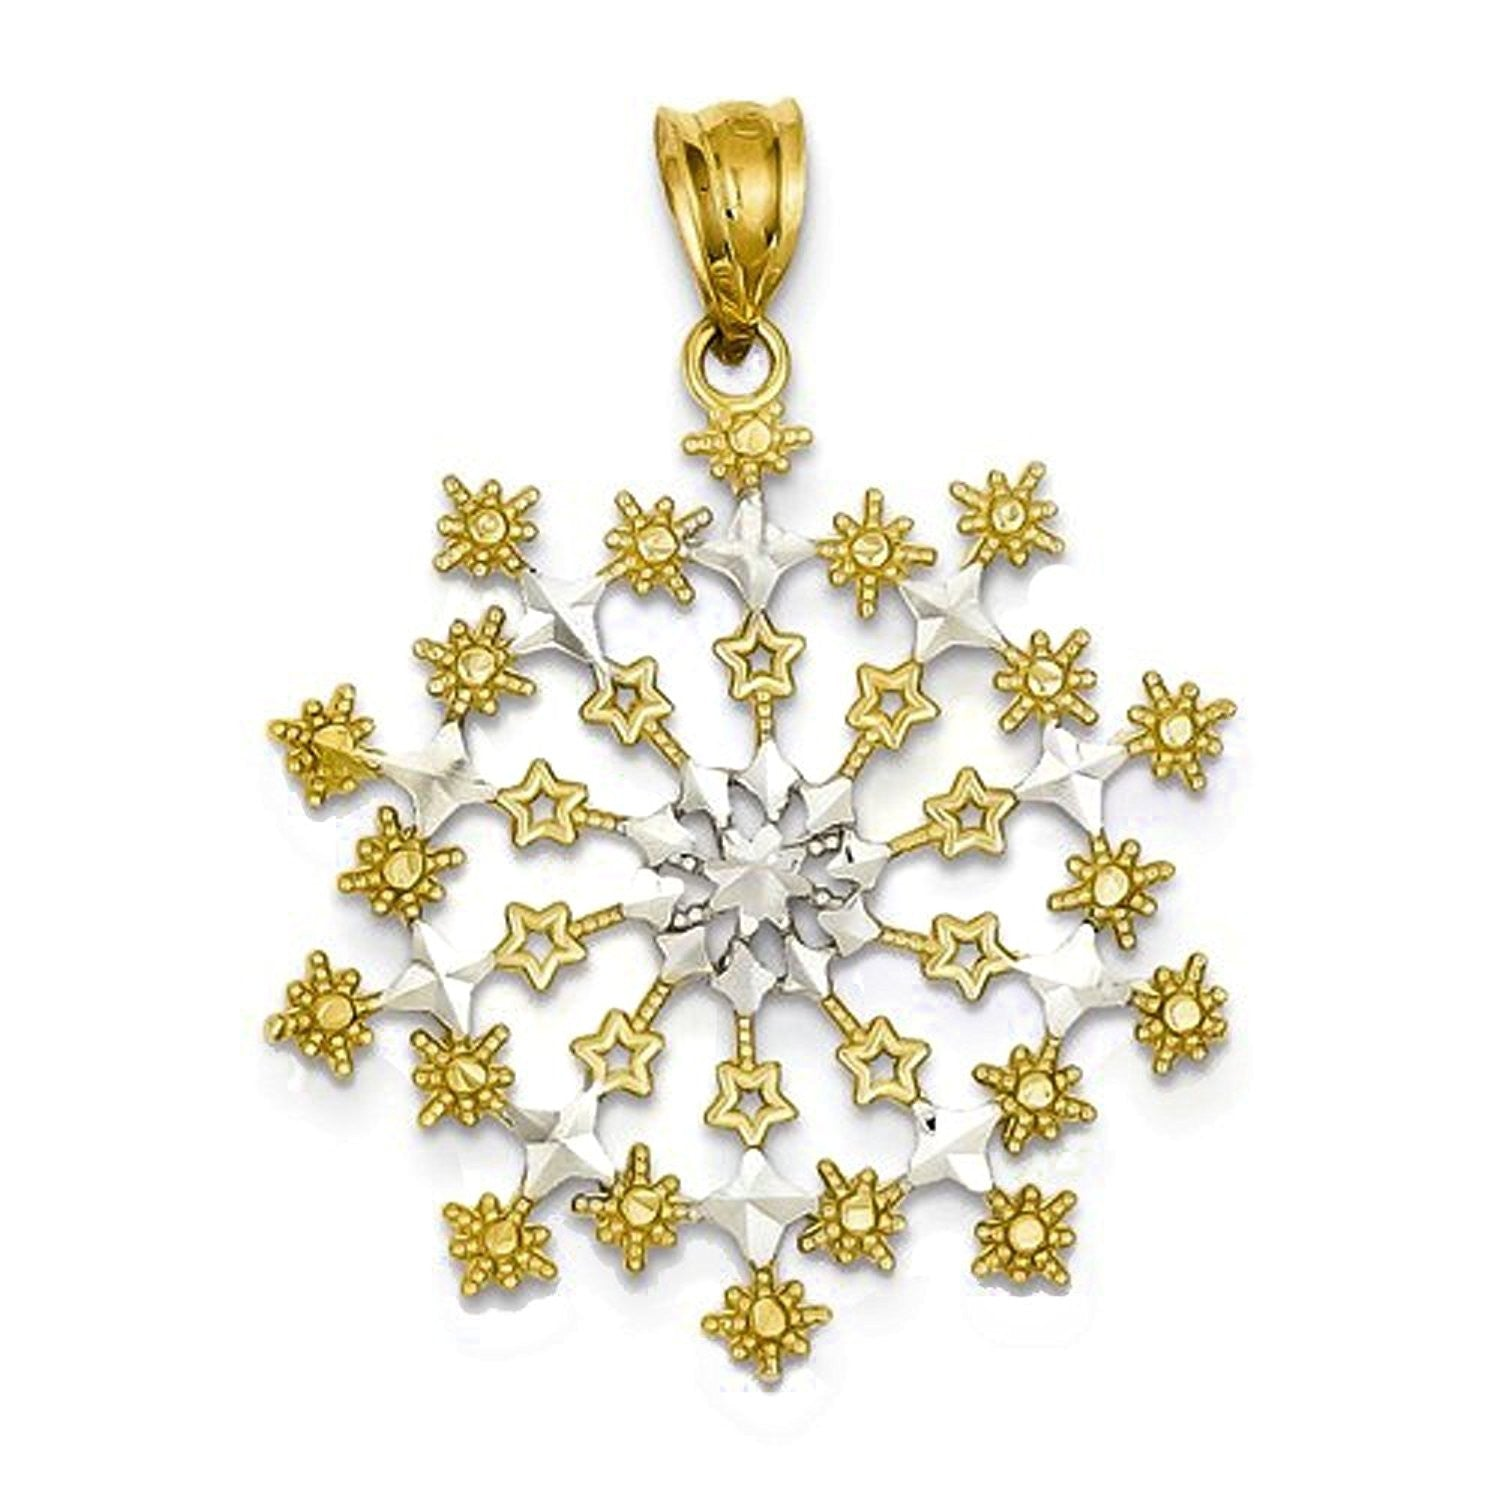 14k Yellow Gold and Rhodium Starburst Snowflake Pendant Charm